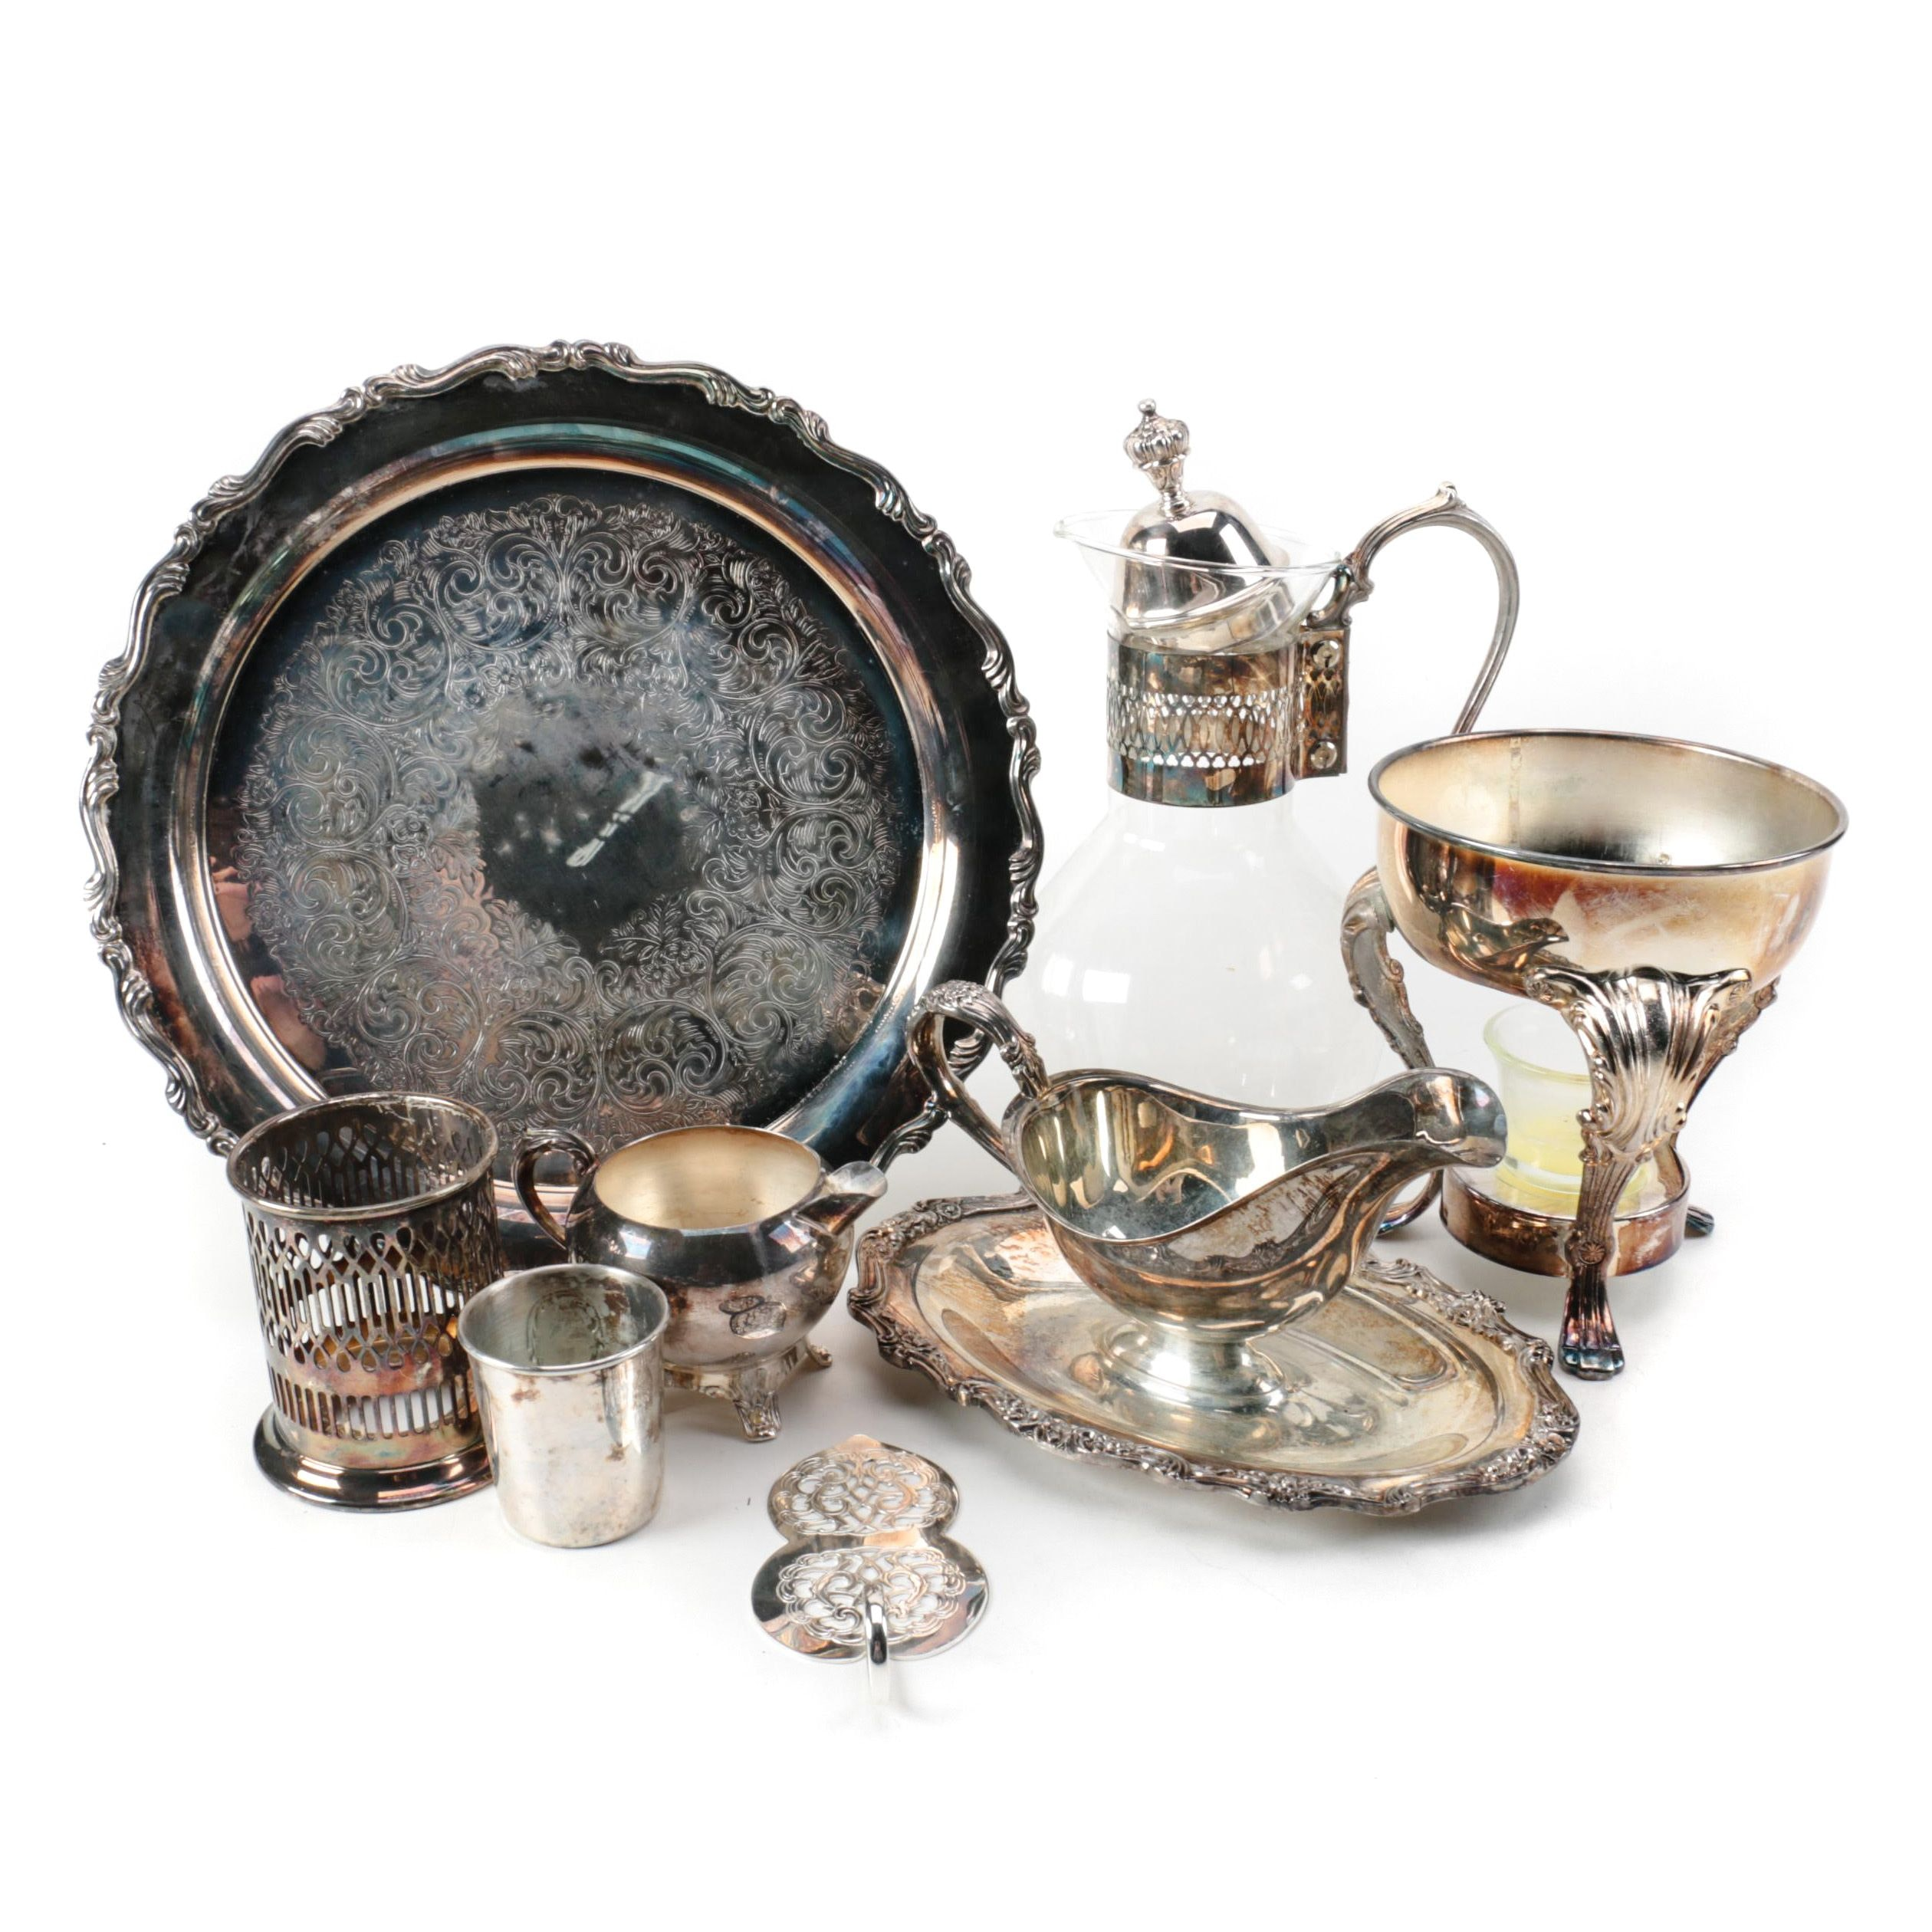 F.B. Rogers Silver Plate Creamer with Other Silver Plate Serveware